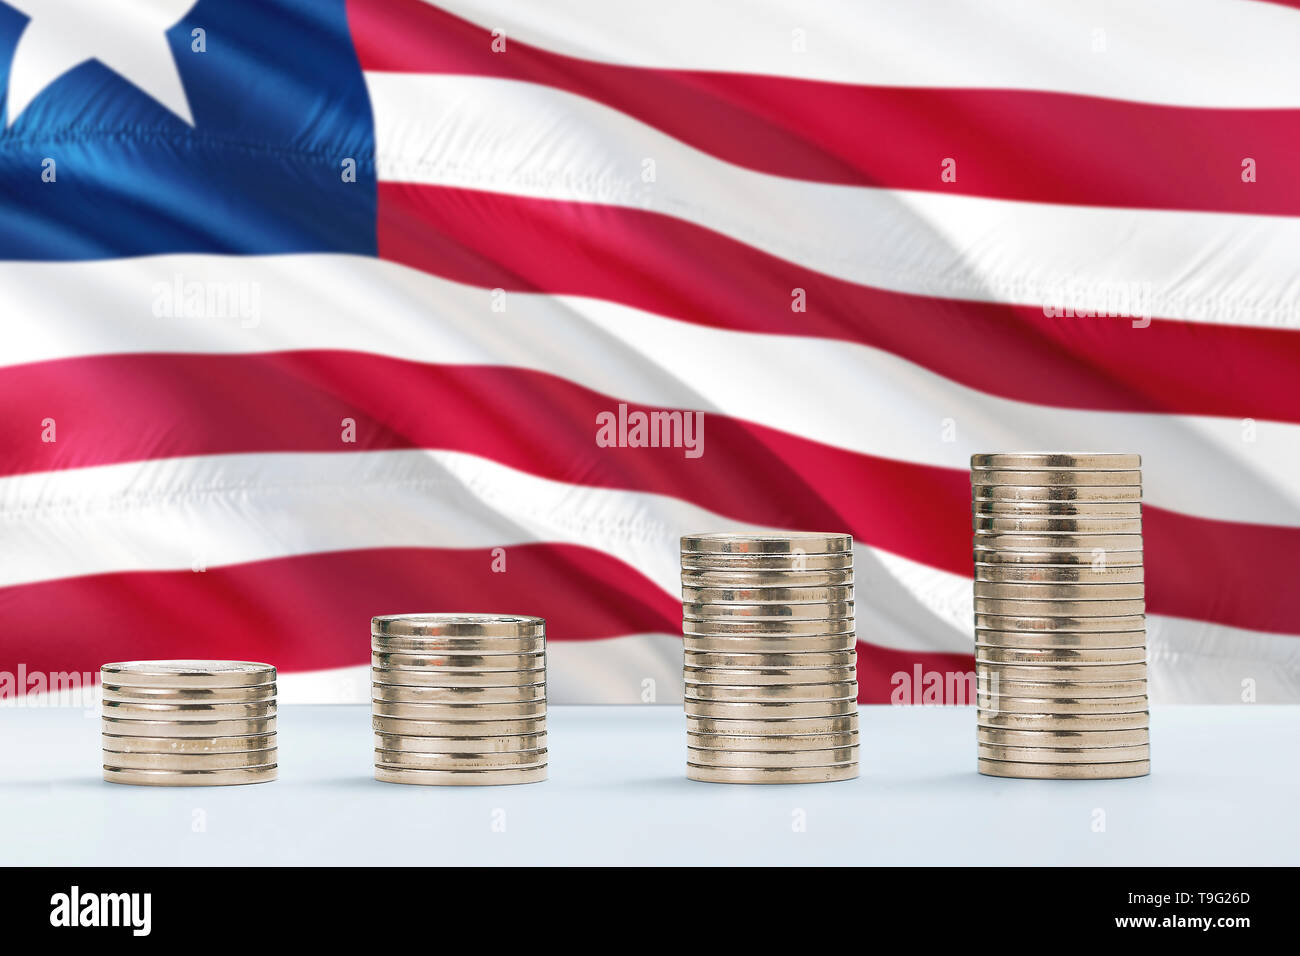 Liberia flag waving in the background with rows of coins for